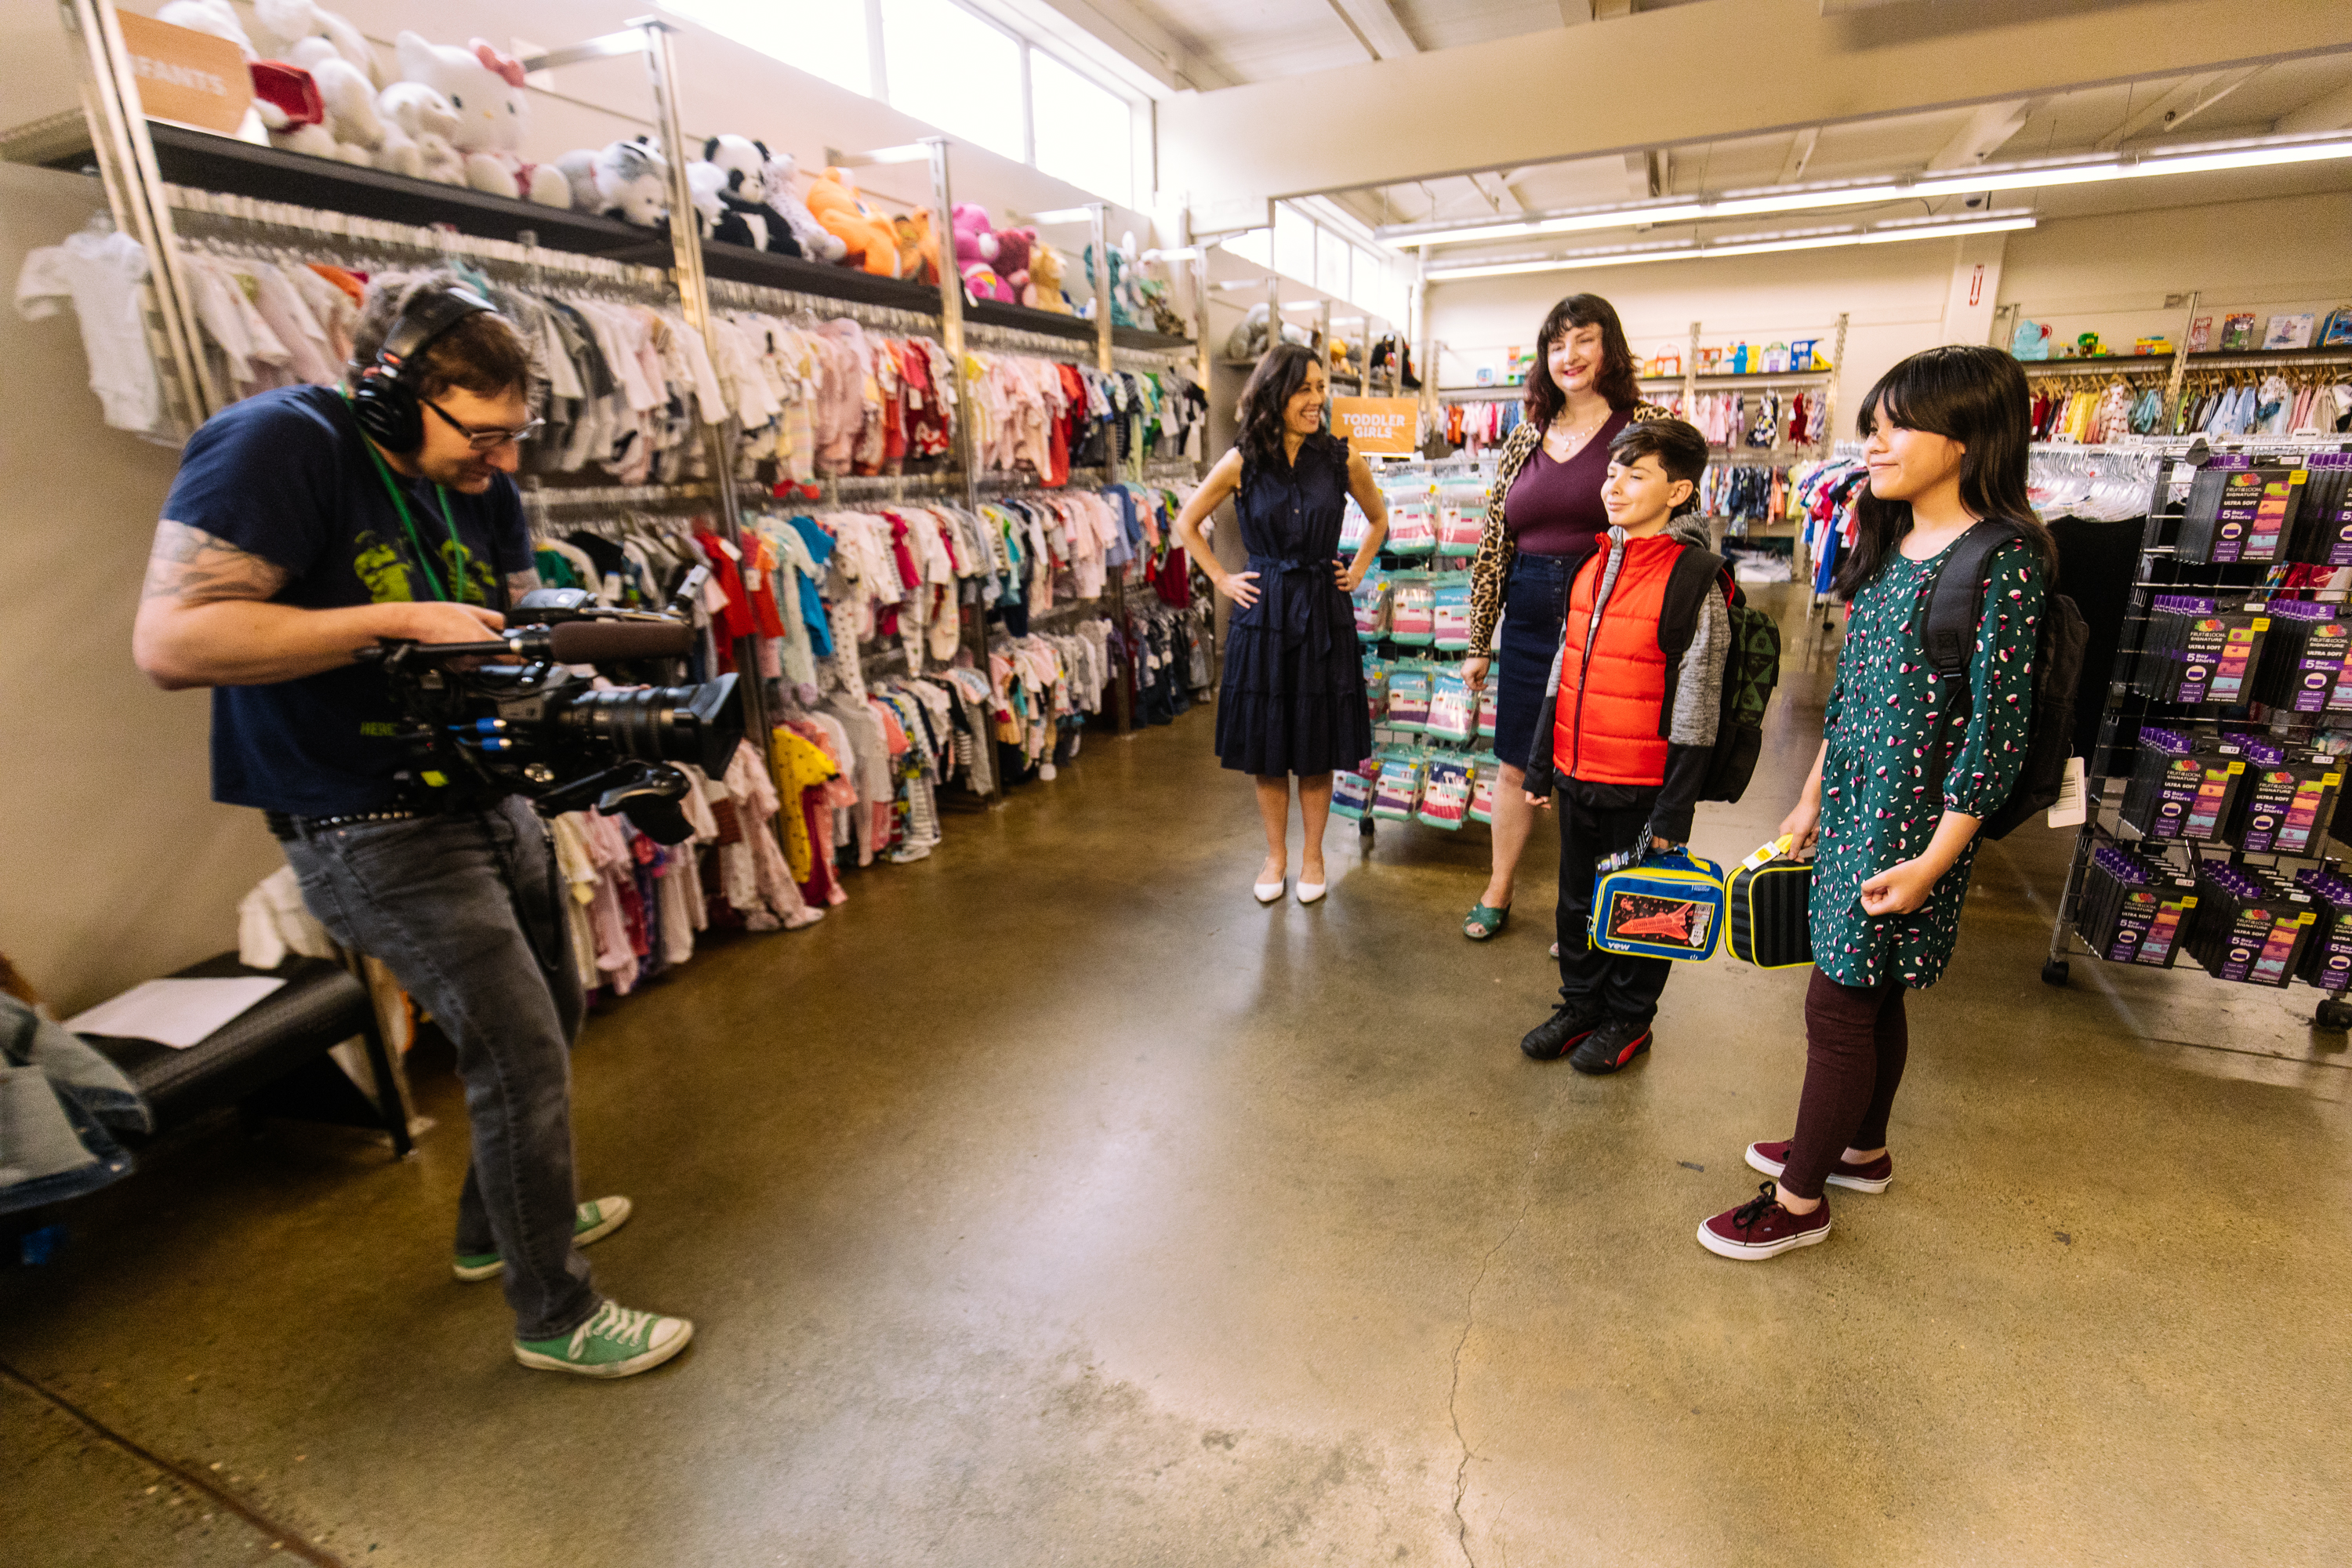 Seattle Goodwill is a great place for families to score the trendiest looks for back to school. That includes retro modern, flannel and{ } comfy cool! Plus Goodwill has new items for sale too, including backpacks and lunch boxes. (Photo: Seattle Goodwill){ }